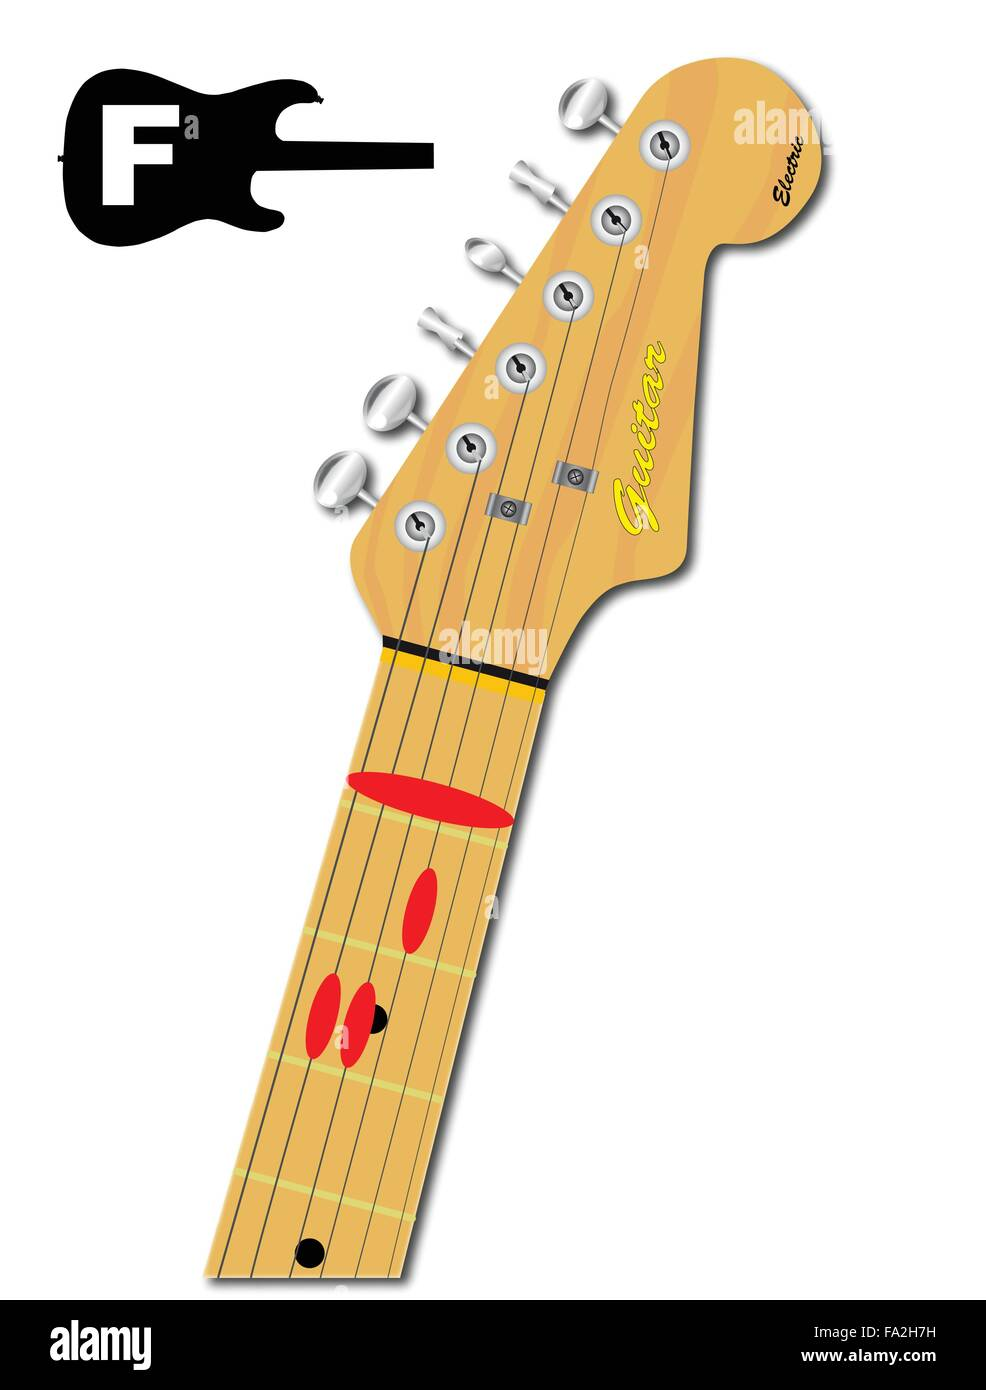 An Electric Guitar Neck With The Chord Shape For F Major Indicated